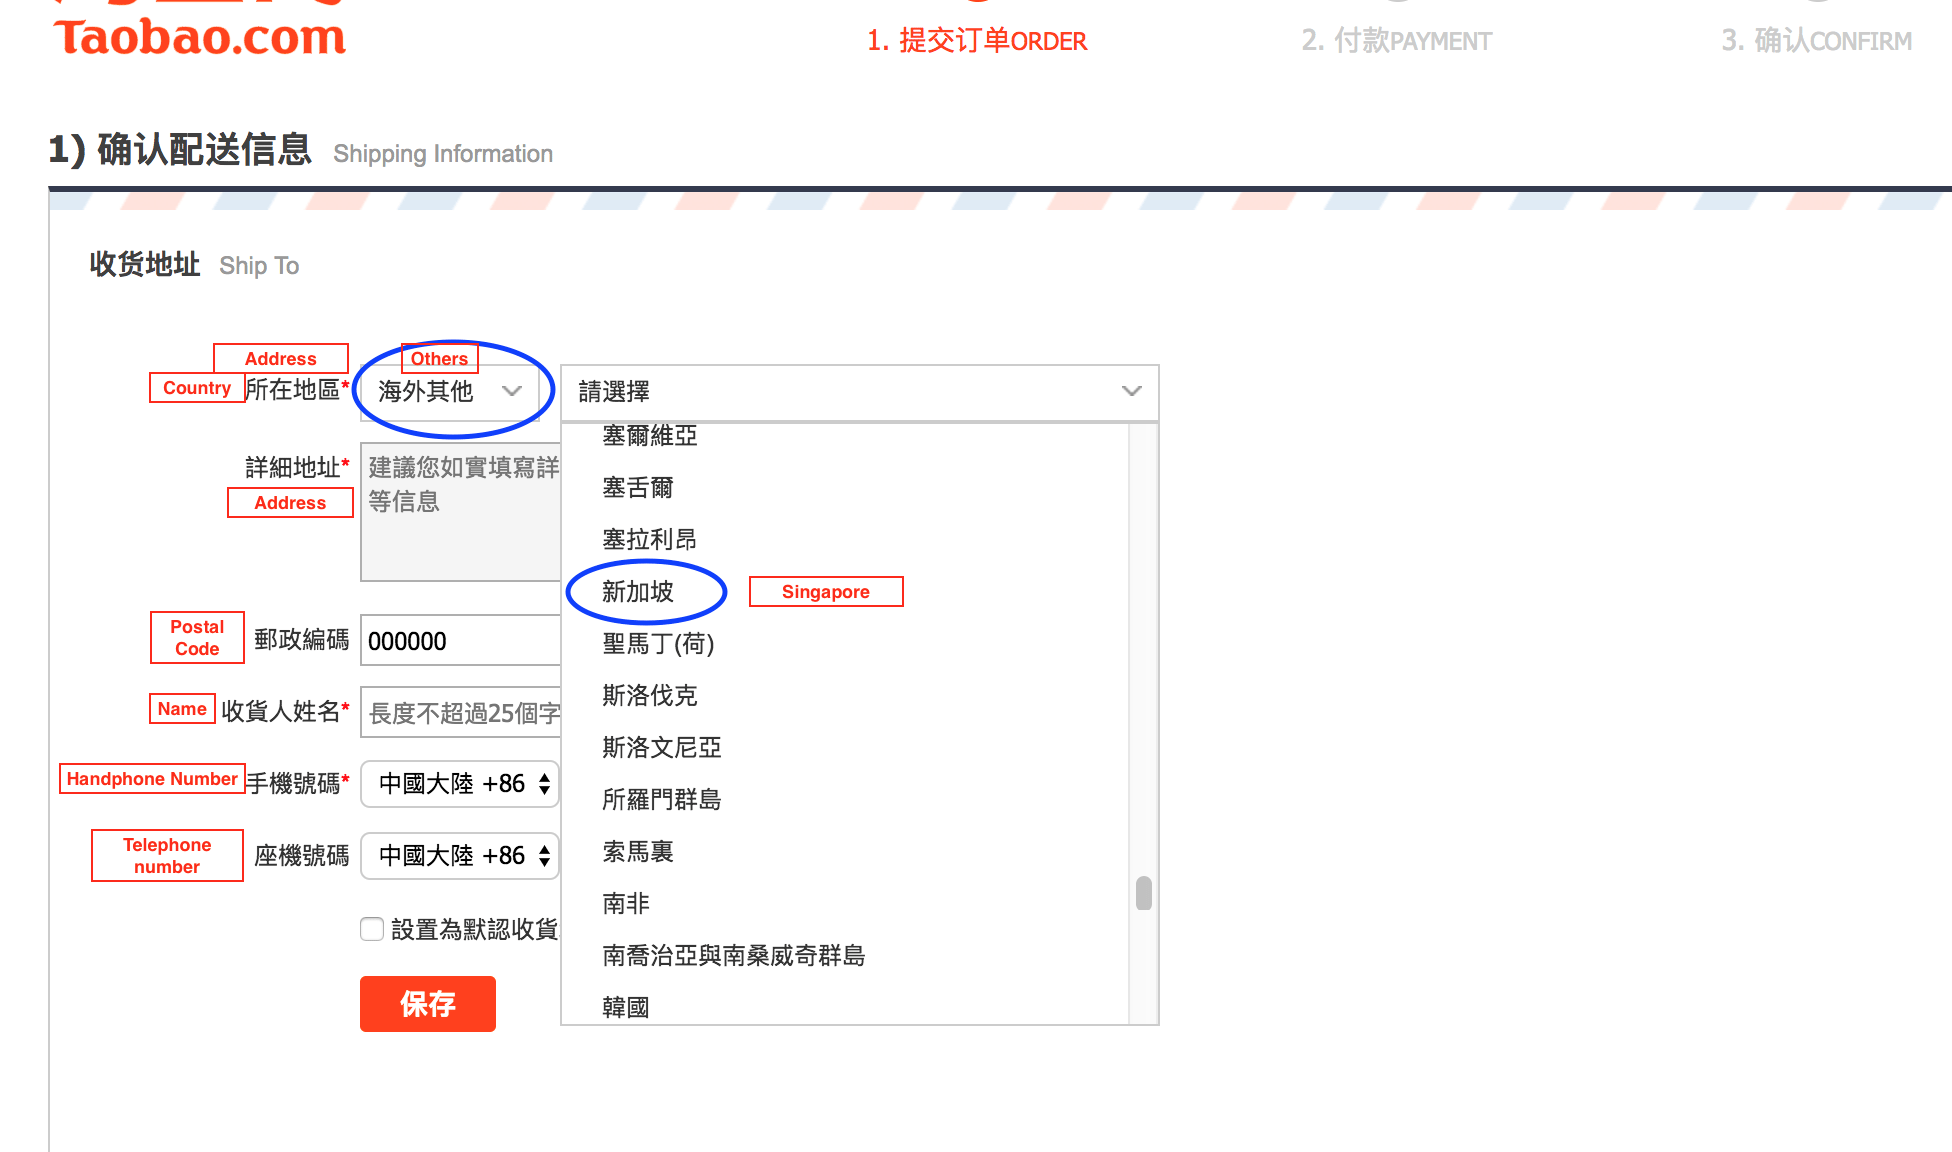 taobao shipping information page